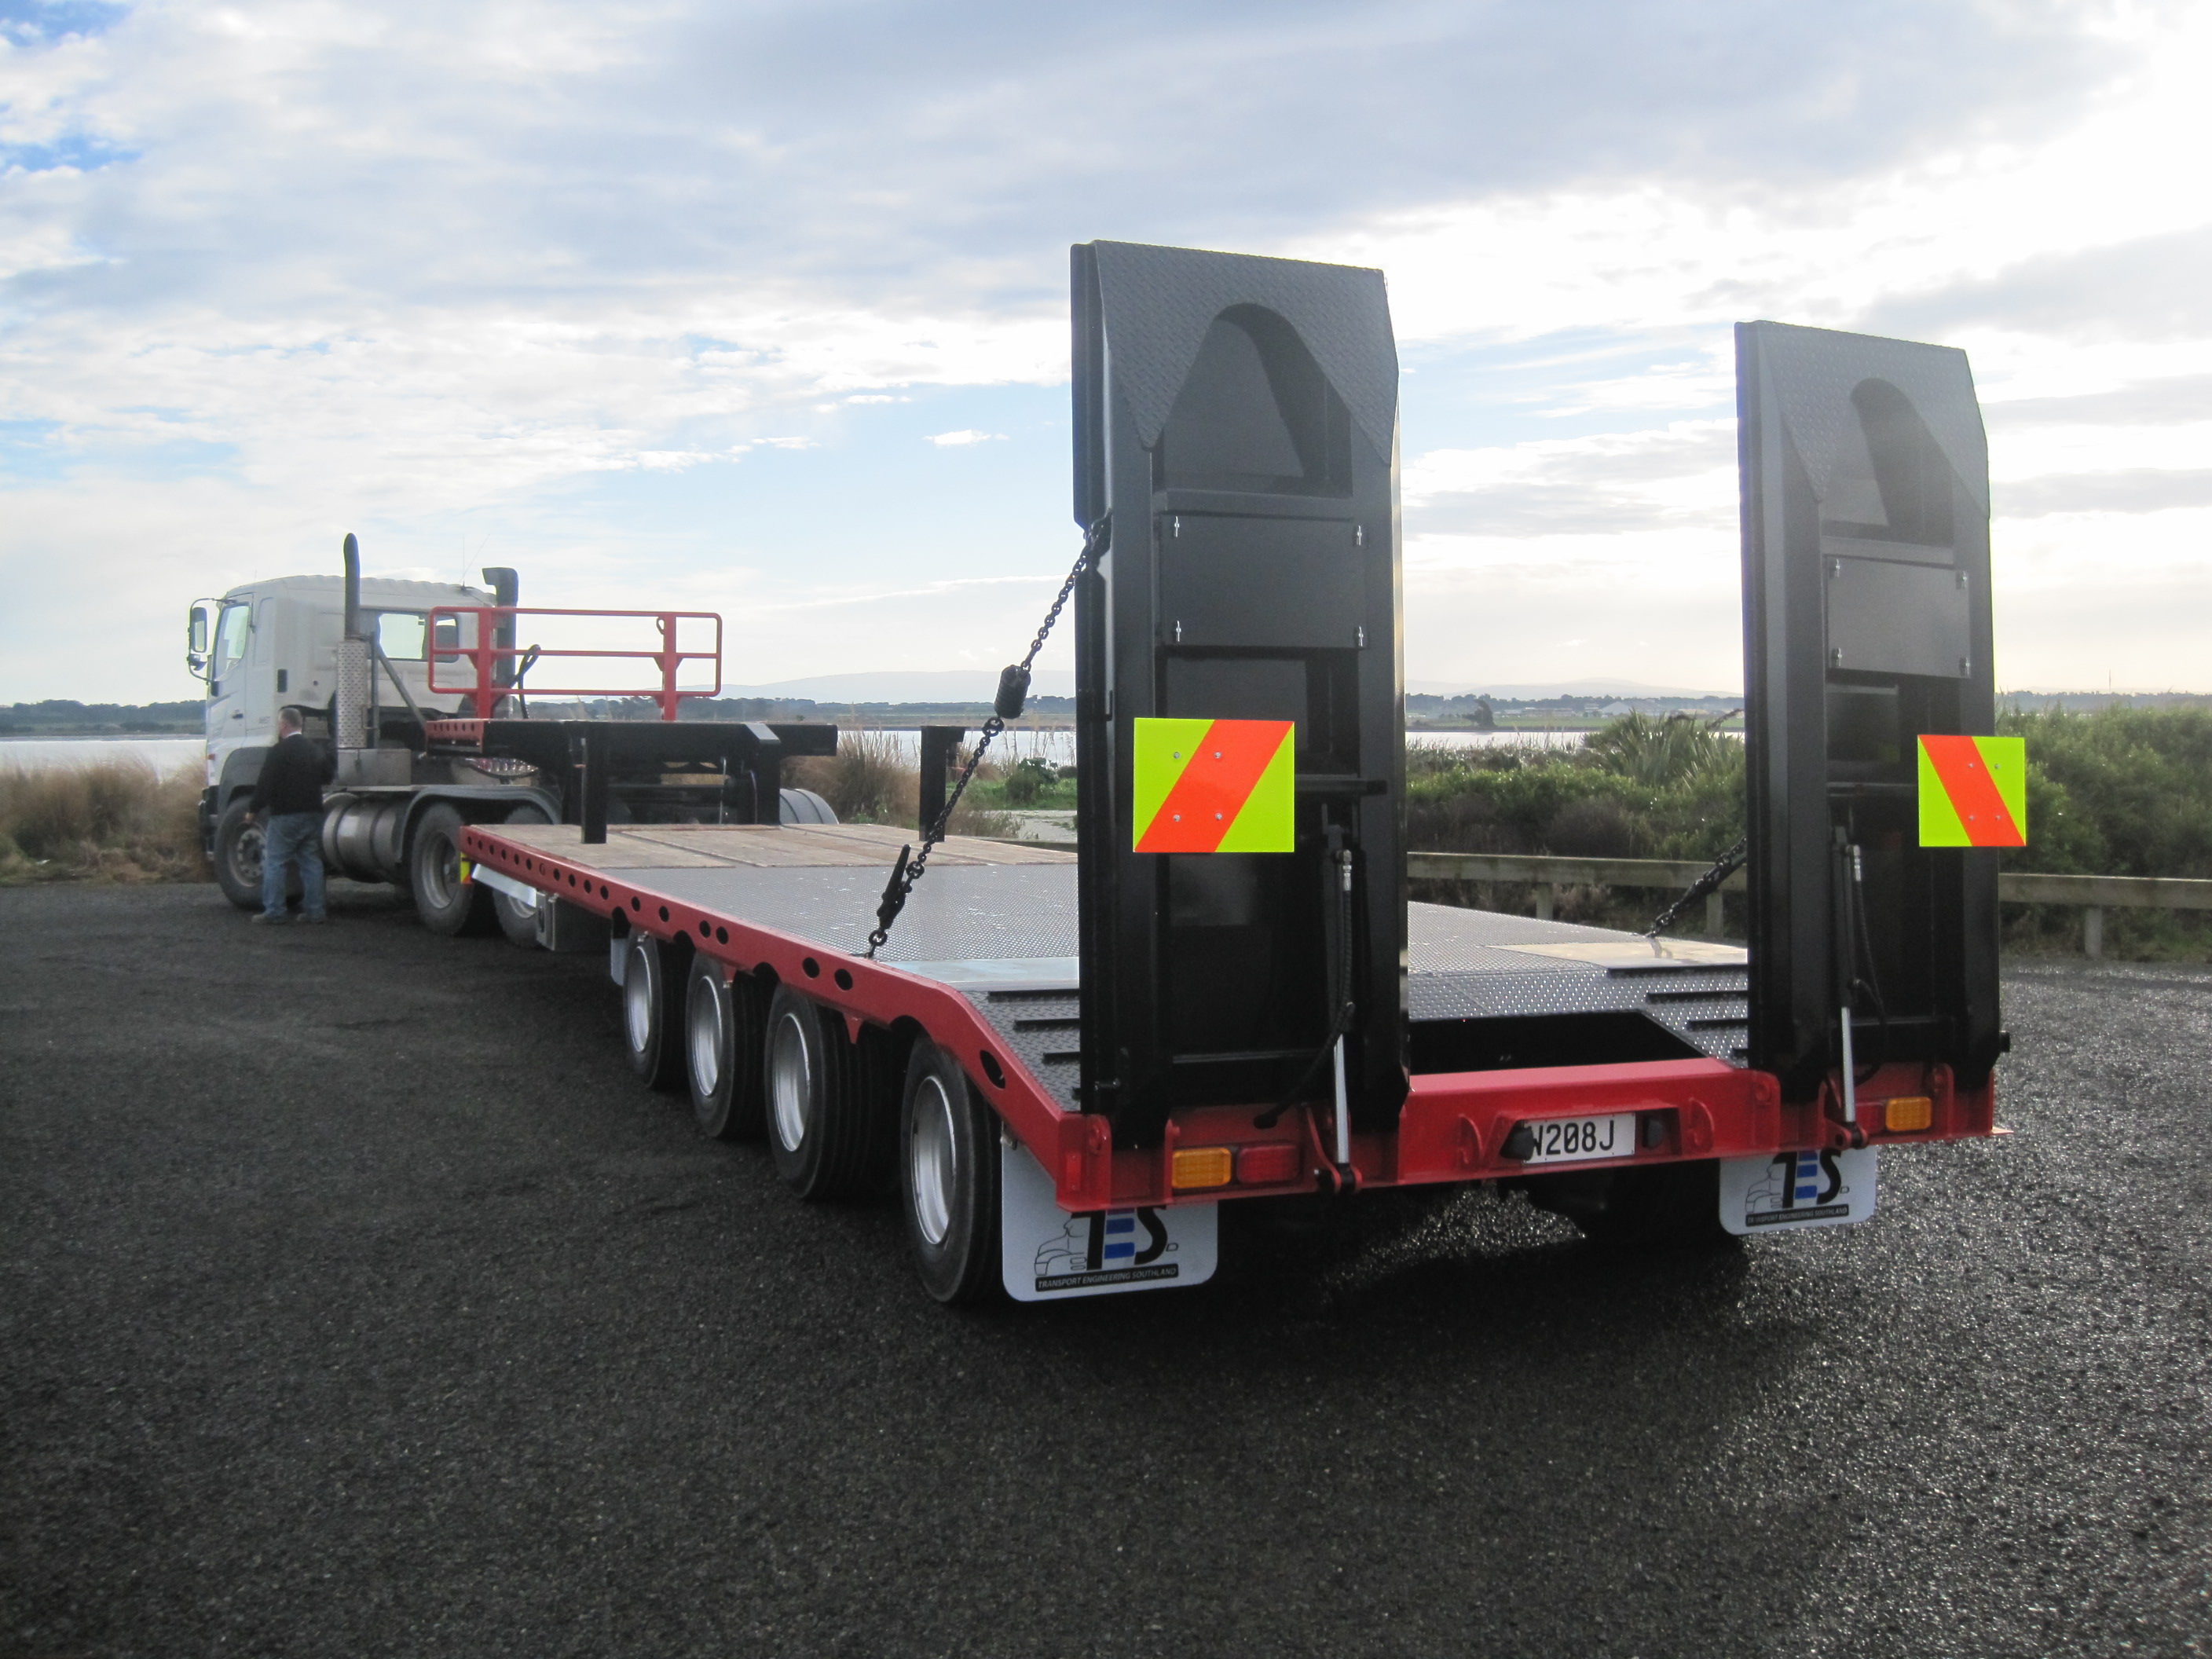 Transporter trailers